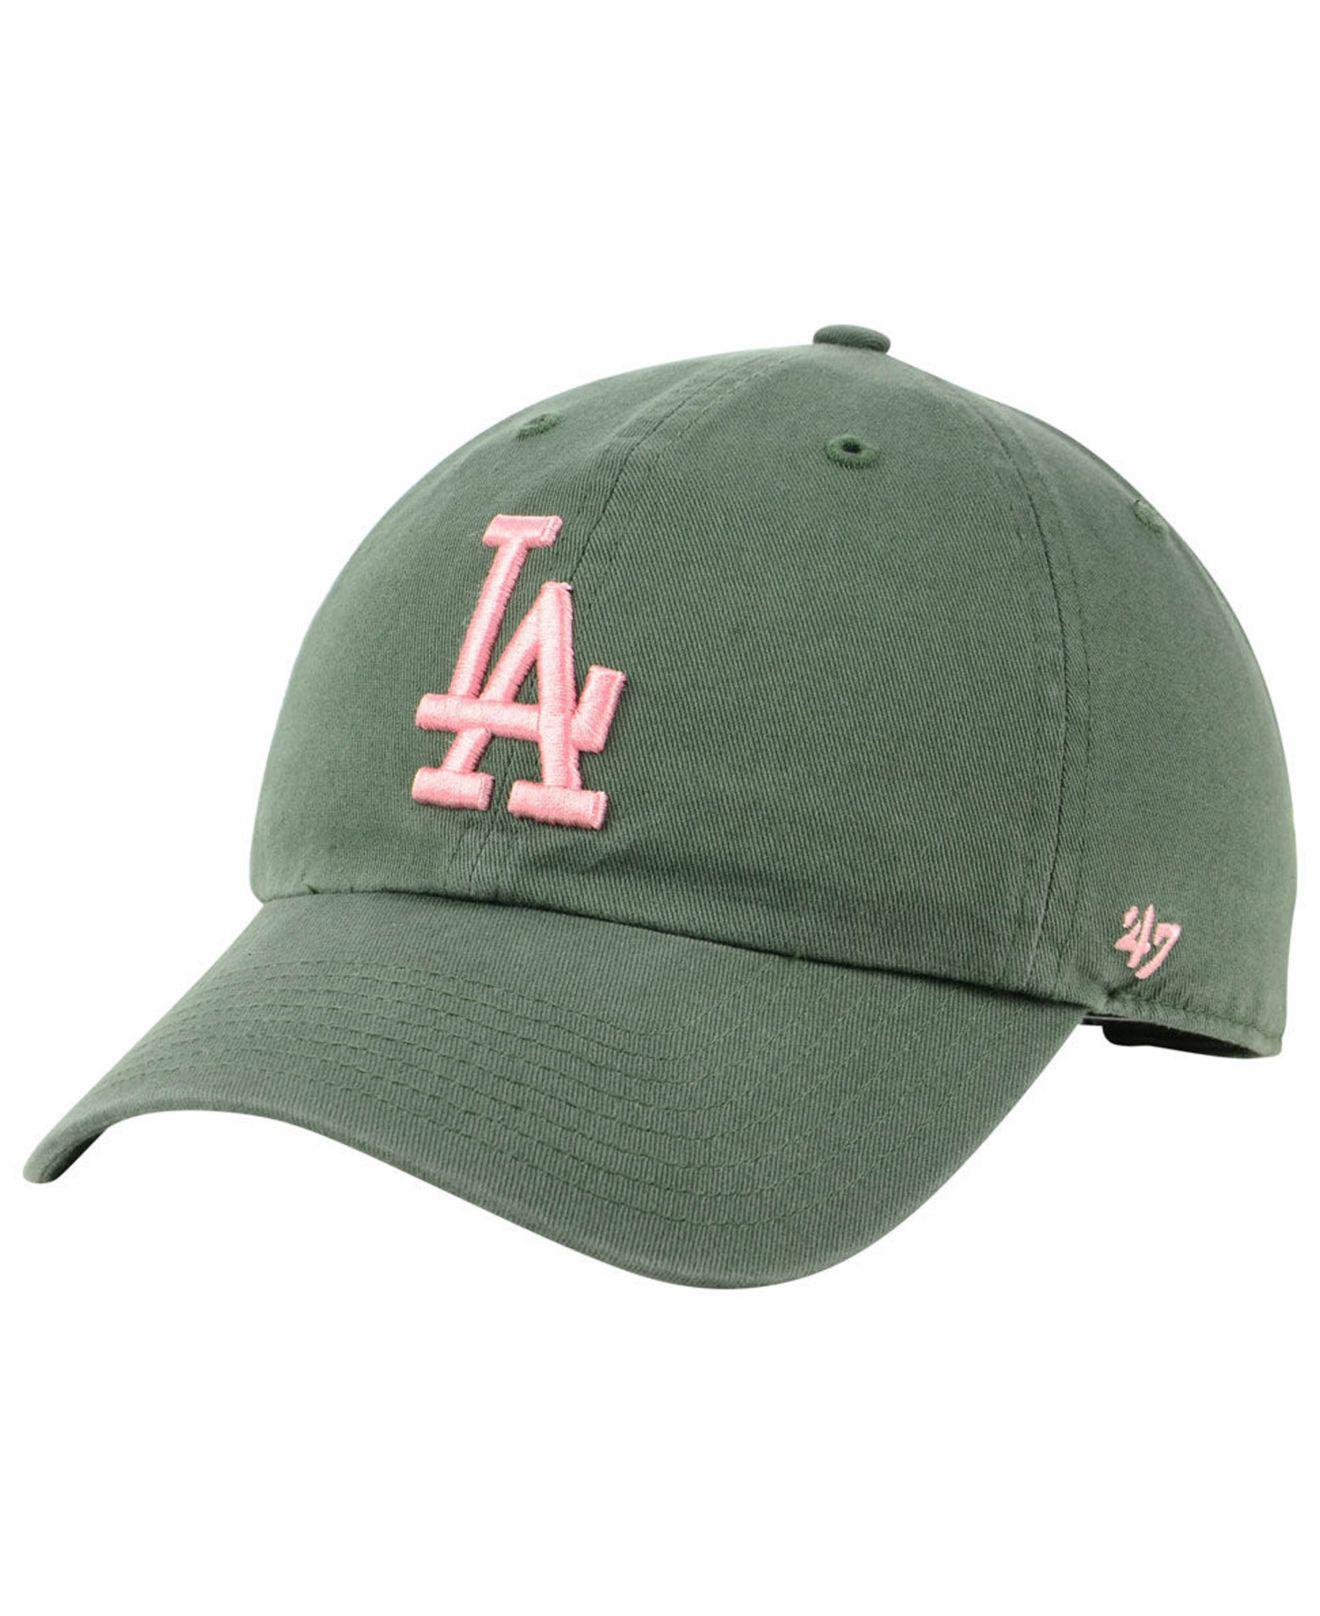 27ad1900c0e75 Lyst - 47 Brand Los Angeles Dodgers Moss Pink Clean Up Cap in Green ...